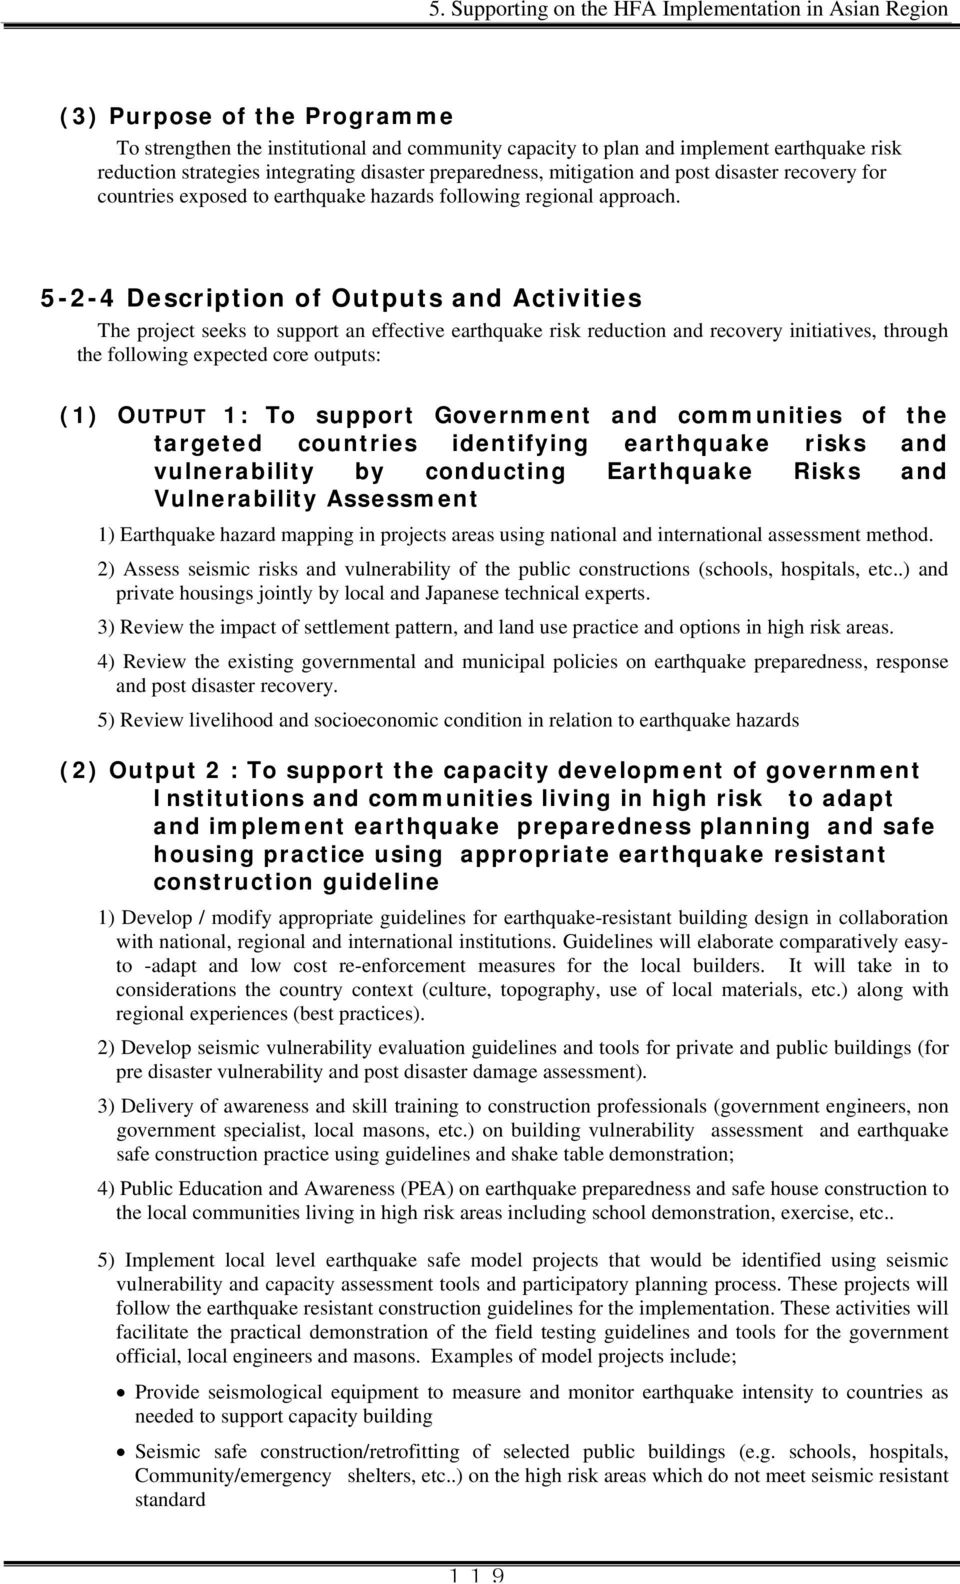 5-2-4 Description of Outputs and Activities The project seeks to support an effective earthquake risk reduction and recovery initiatives, through the following expected core outputs: (1) OUTPUT 1: To